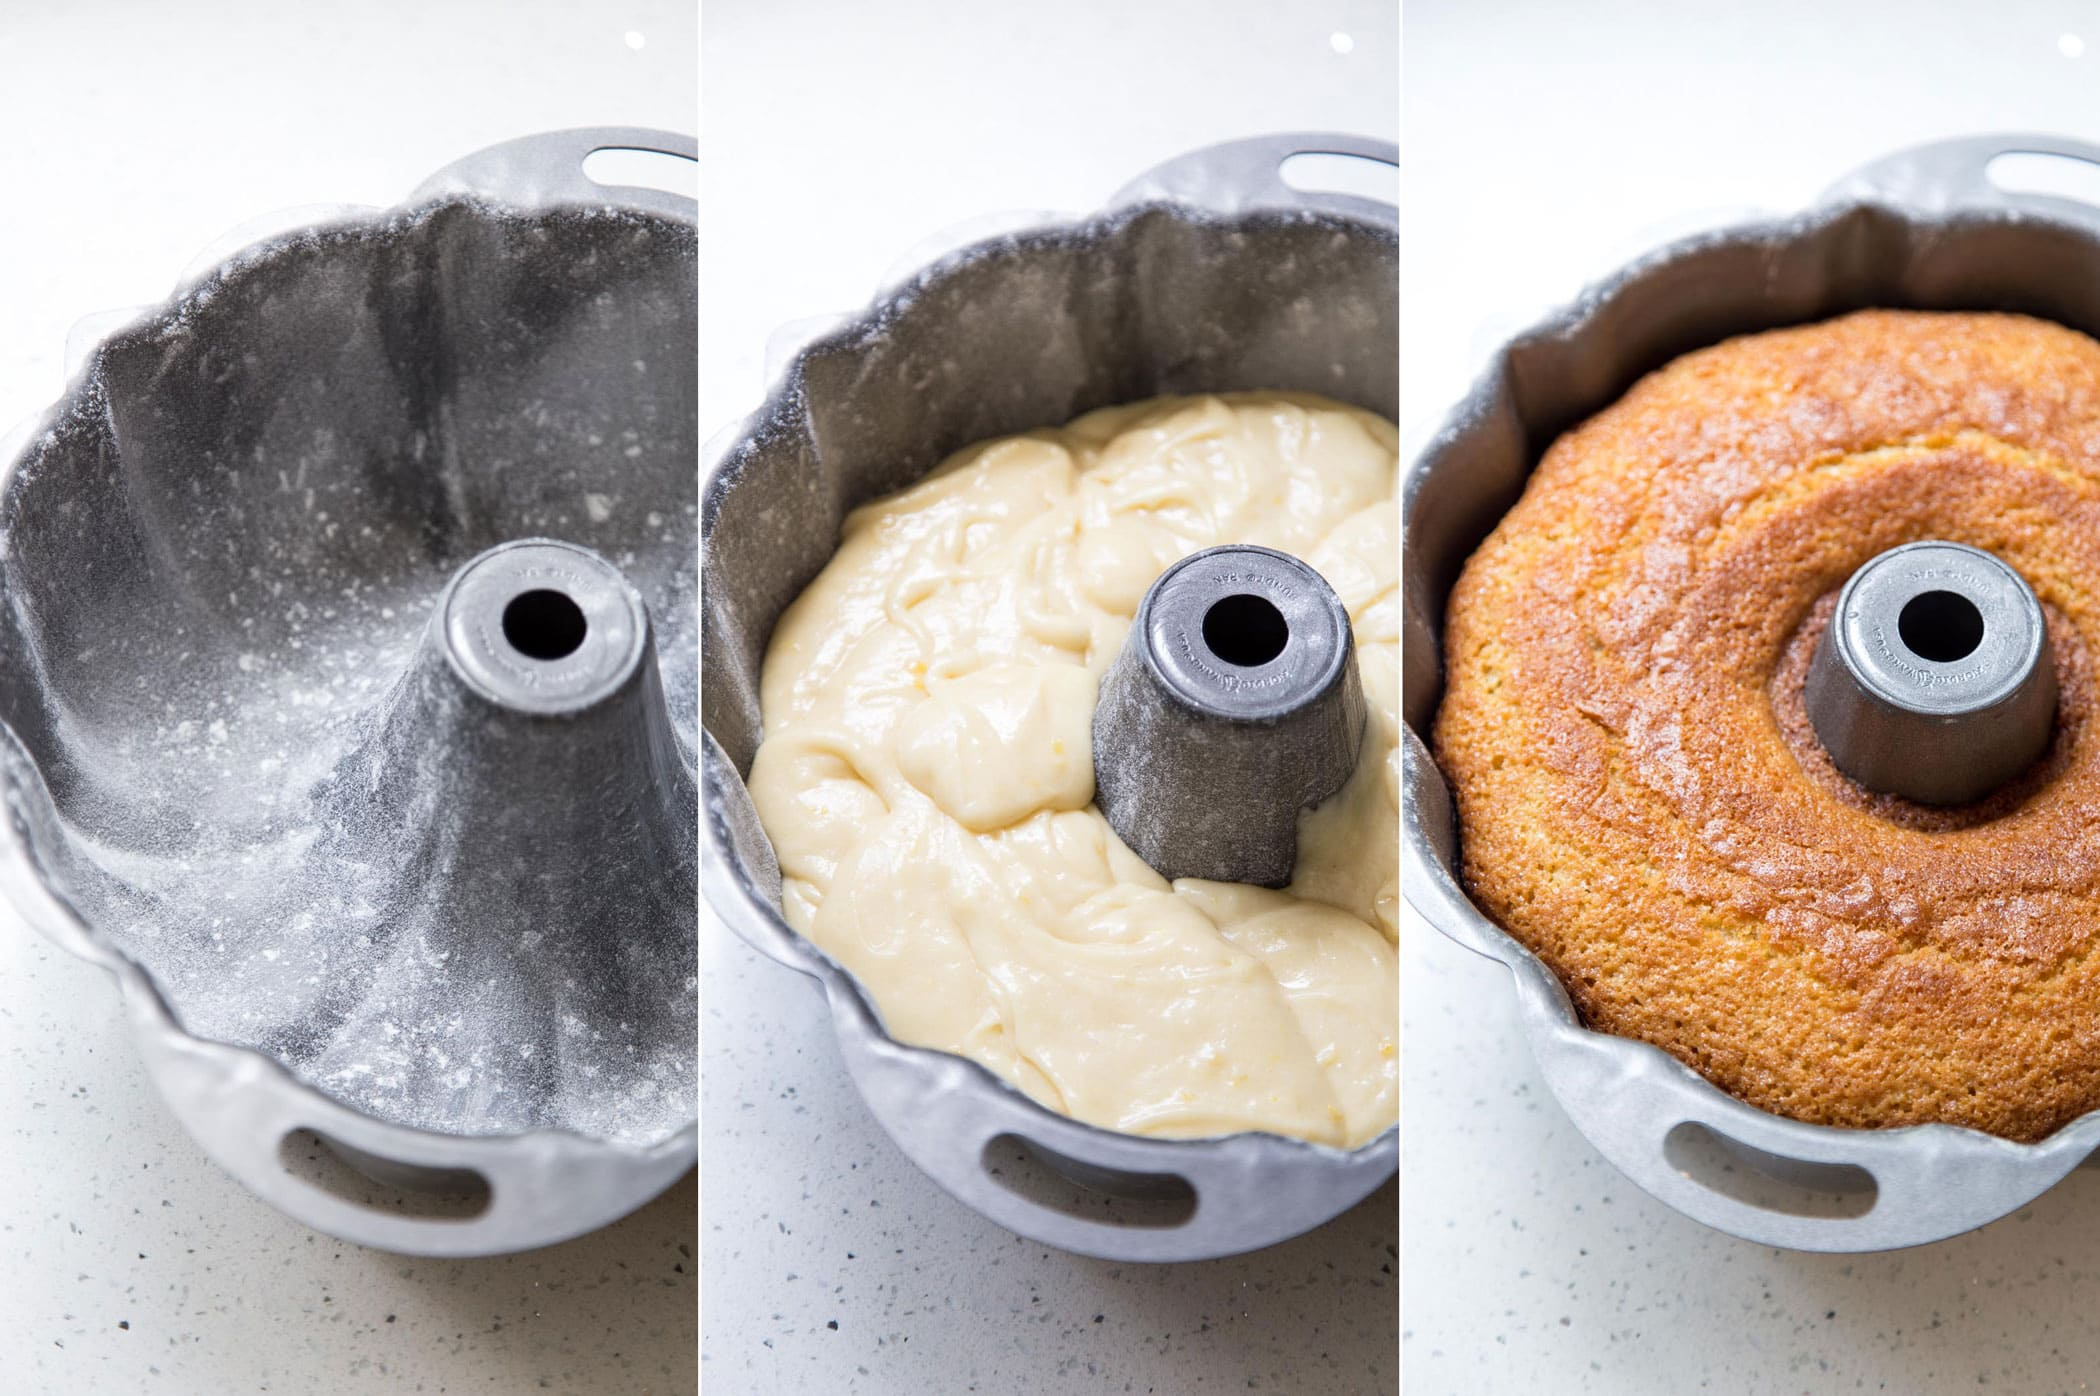 Adding cake batter to bundt pan for baking